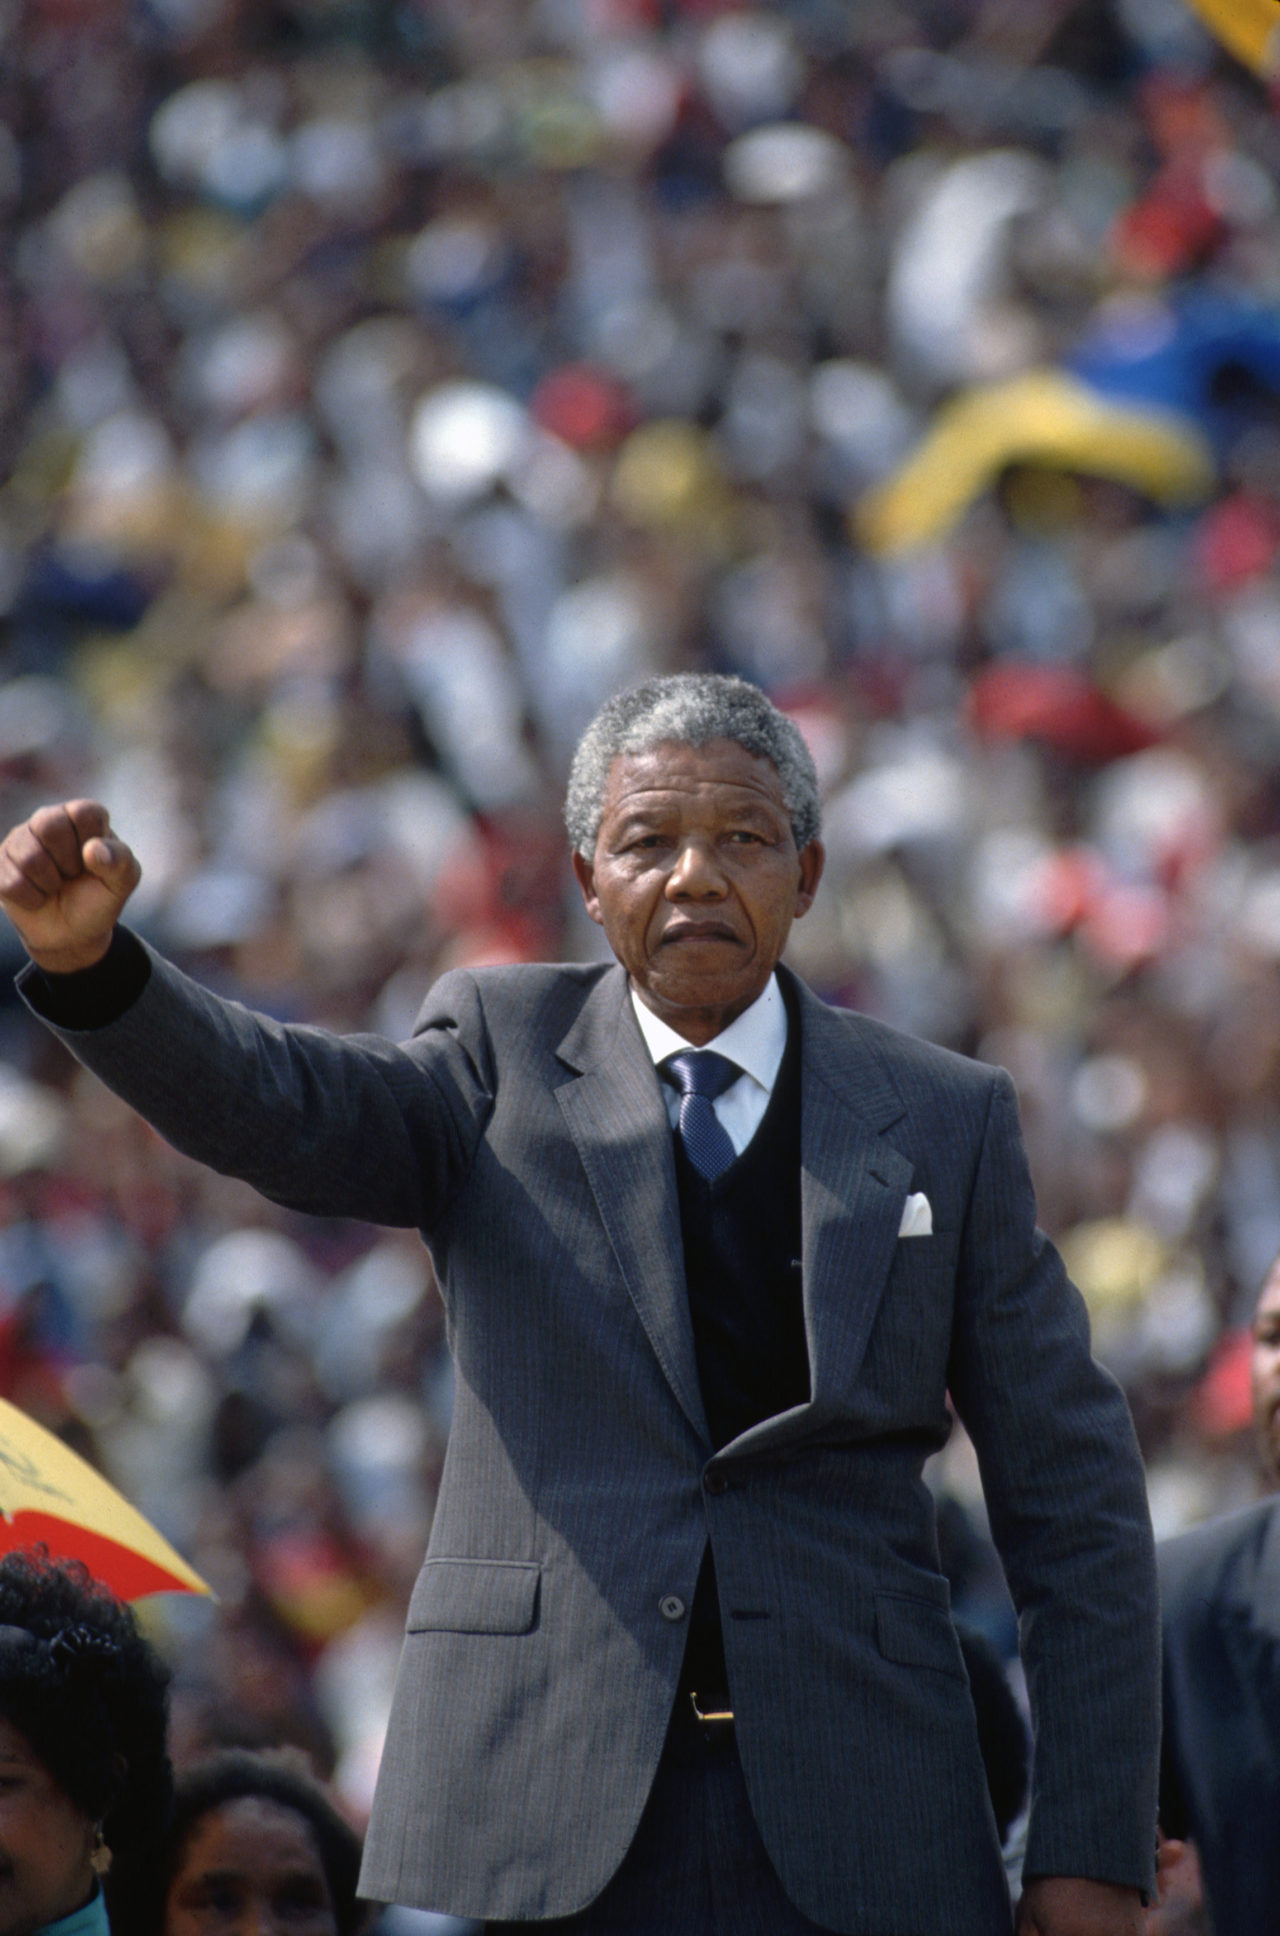 Nelson Mandela Raising Fist to Crowd